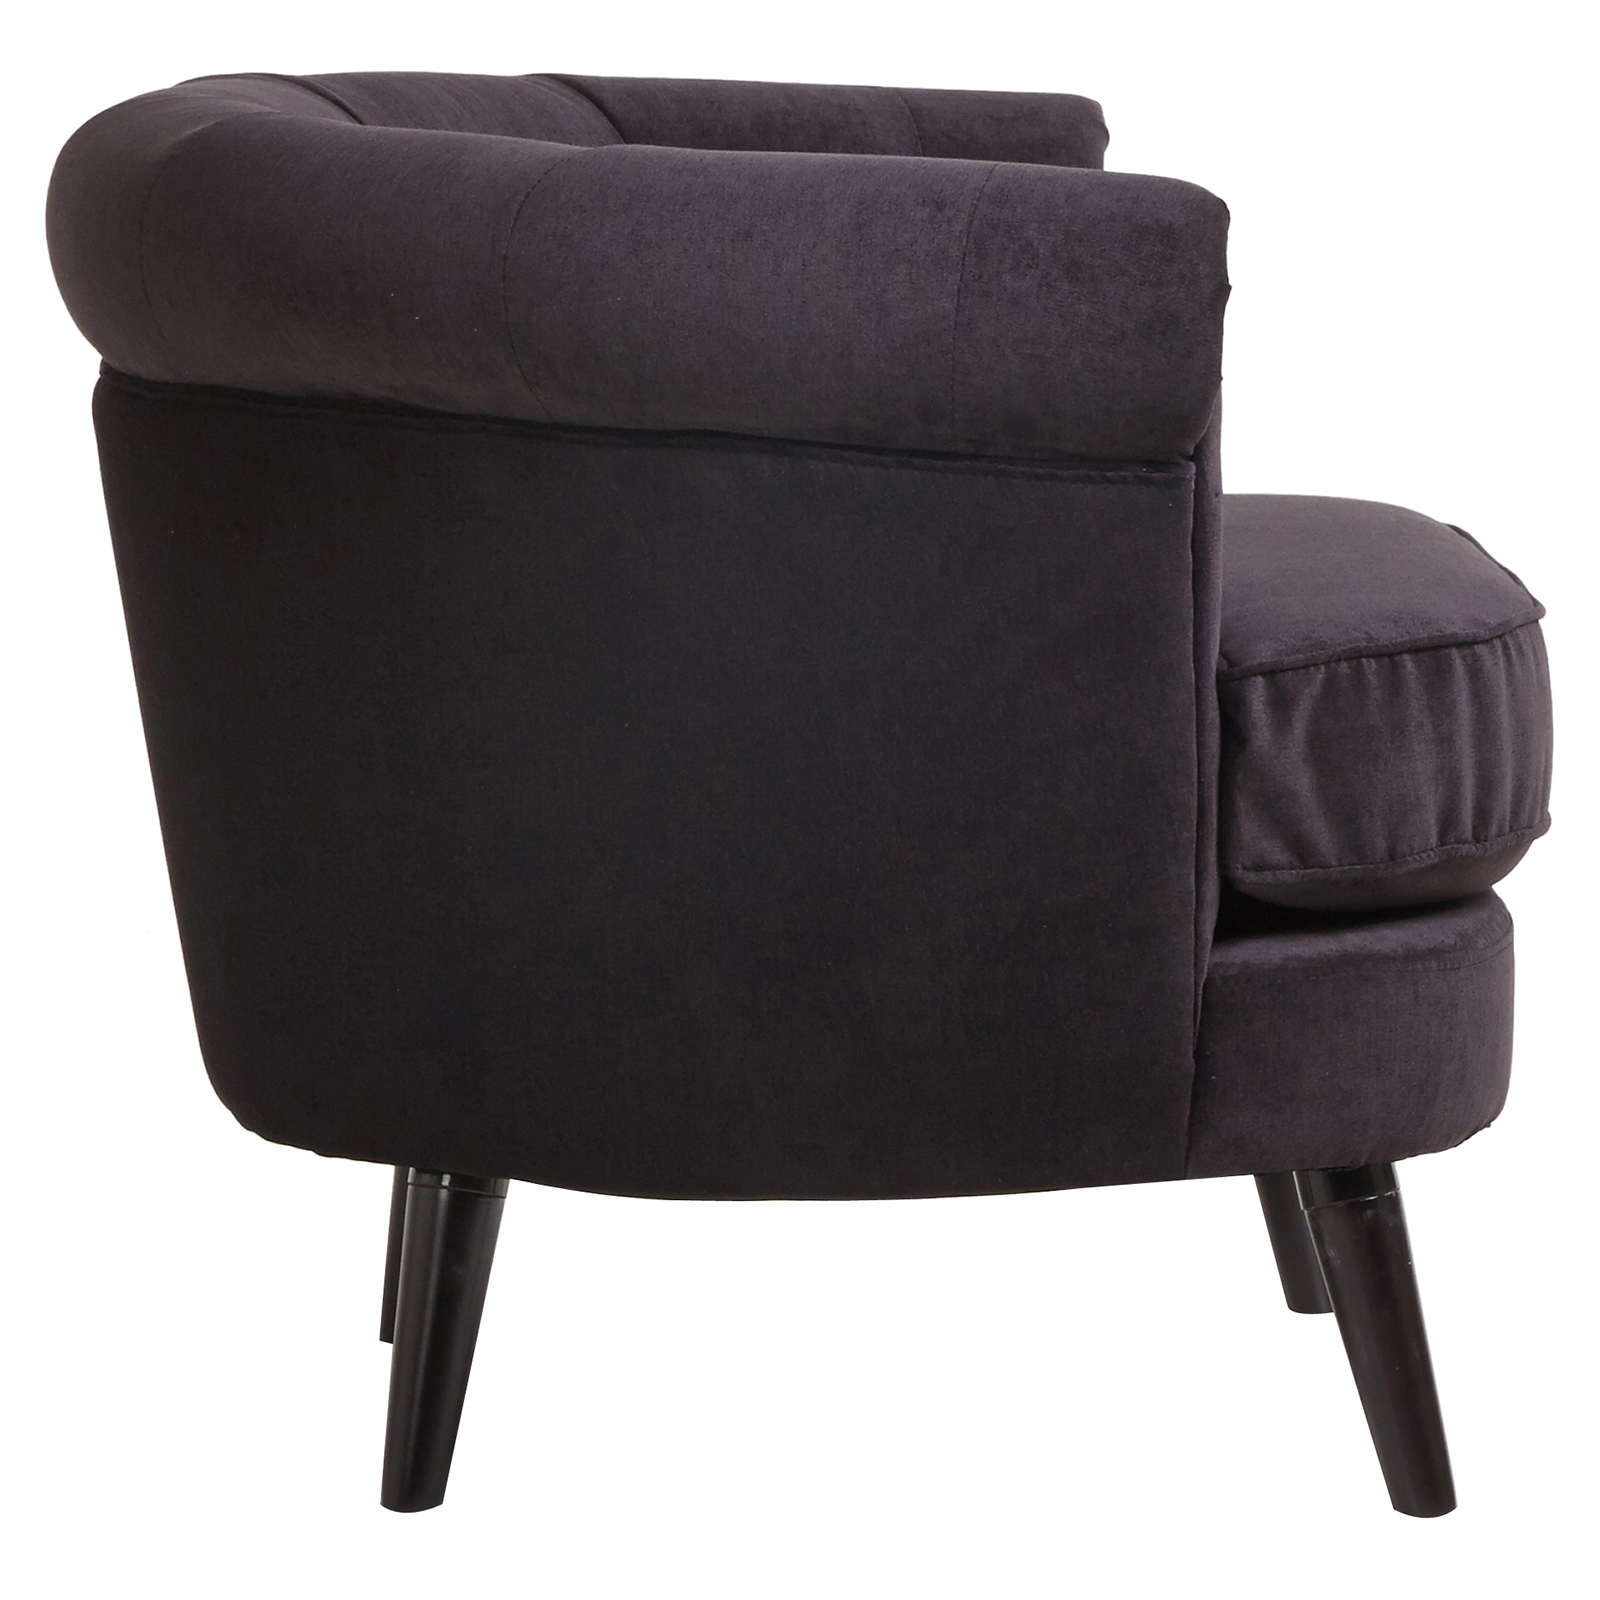 Black armchair 39olivia39 design wooden frame fabric for Sofa arm covers wood